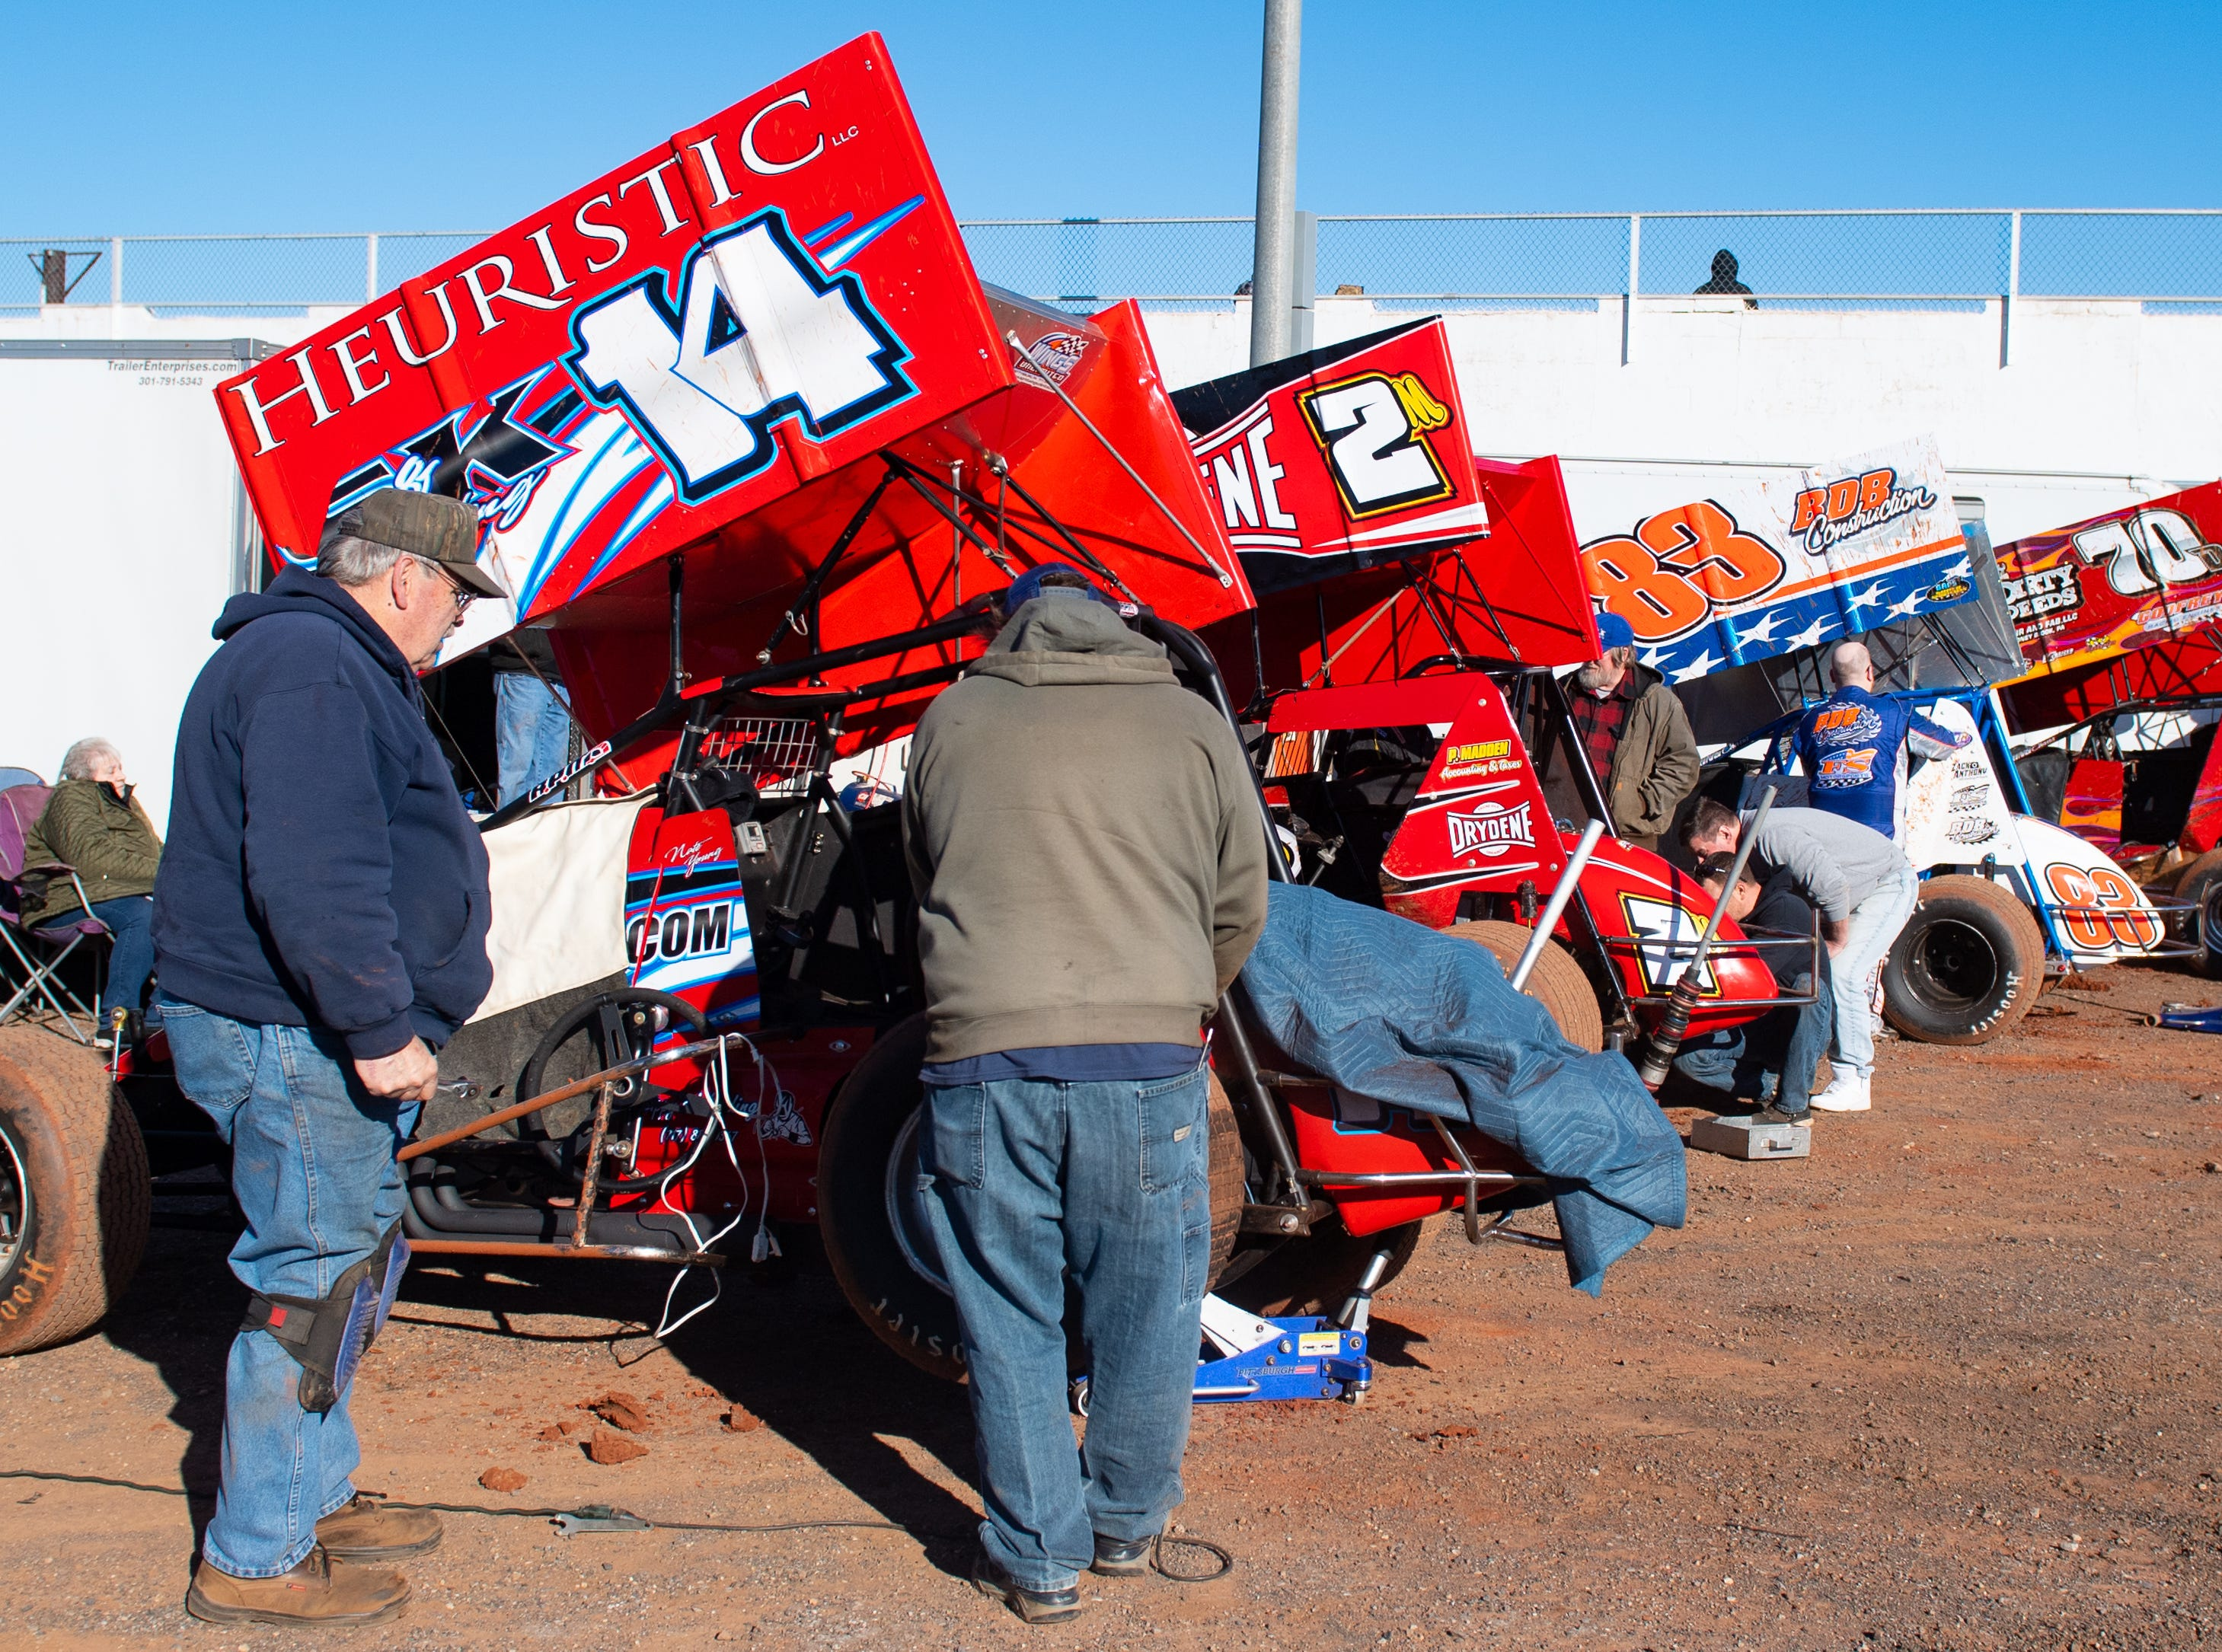 Racers prep for the Super Sportsman races during the 2019 season opener at BAPS Motor Speedway, March 23, 2019.